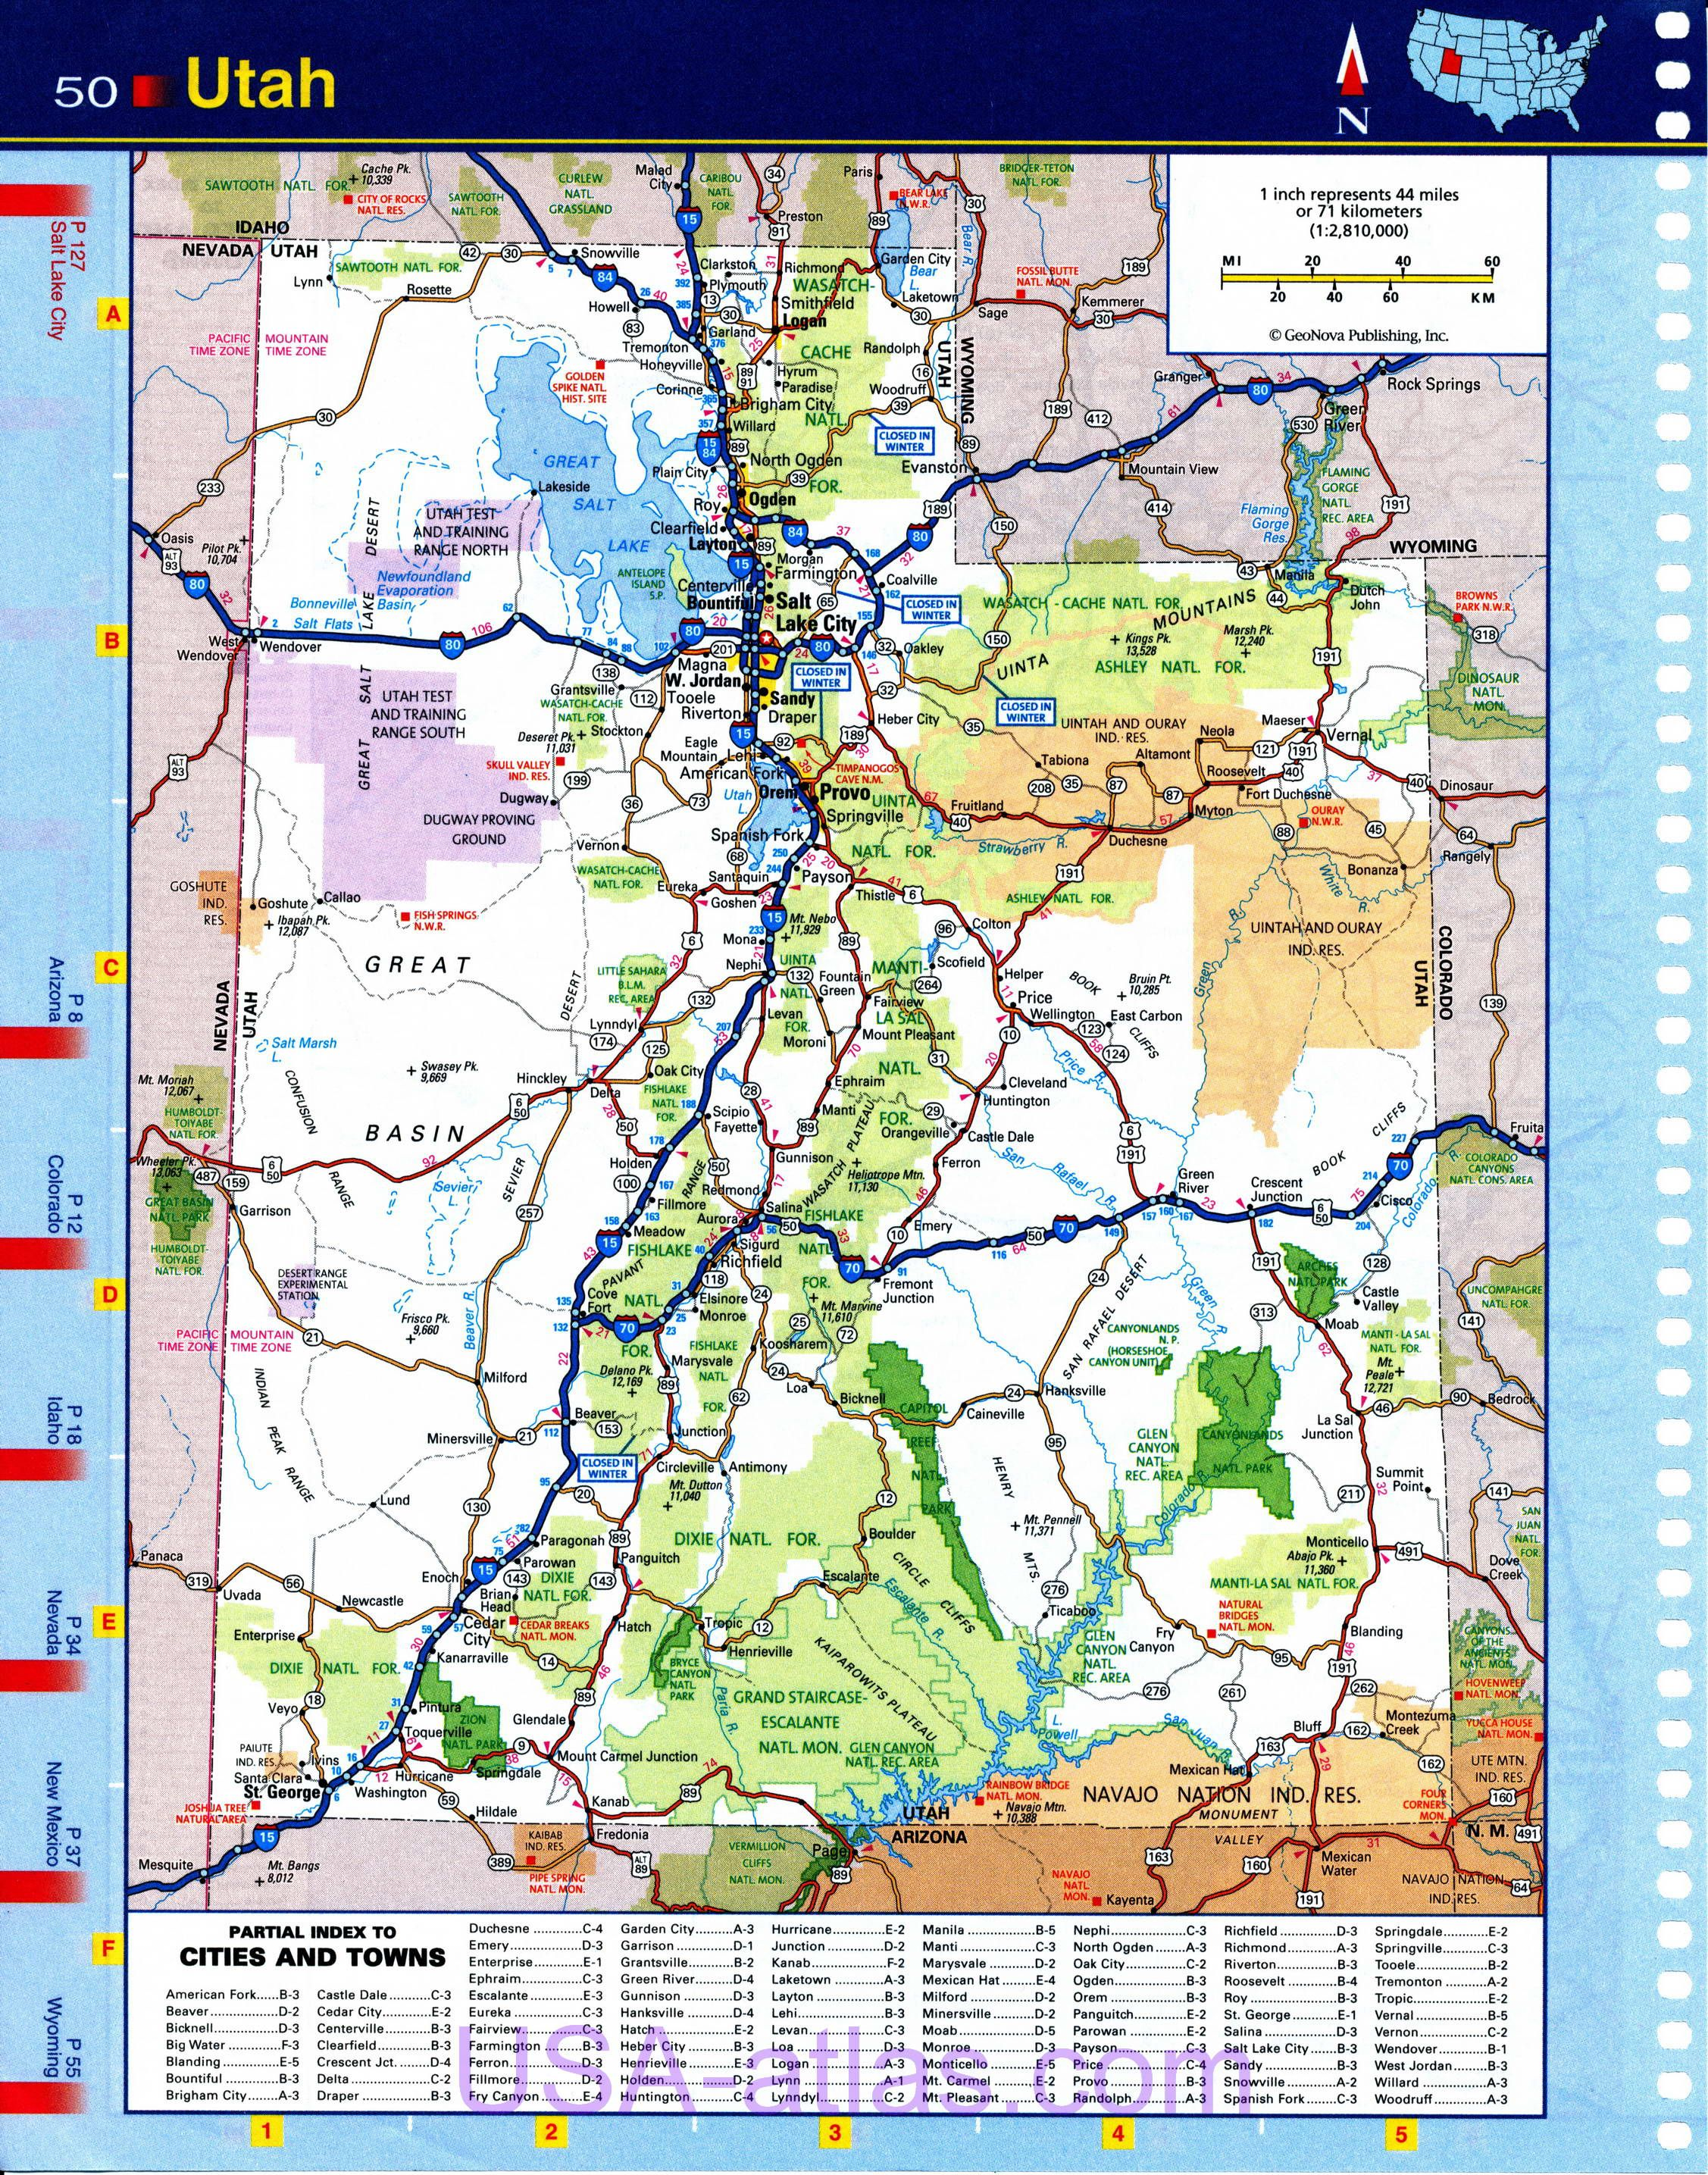 Map Of Utah Detailed Road Map Of The State Of Utah Quality Scanned Highway Map Of The State Of